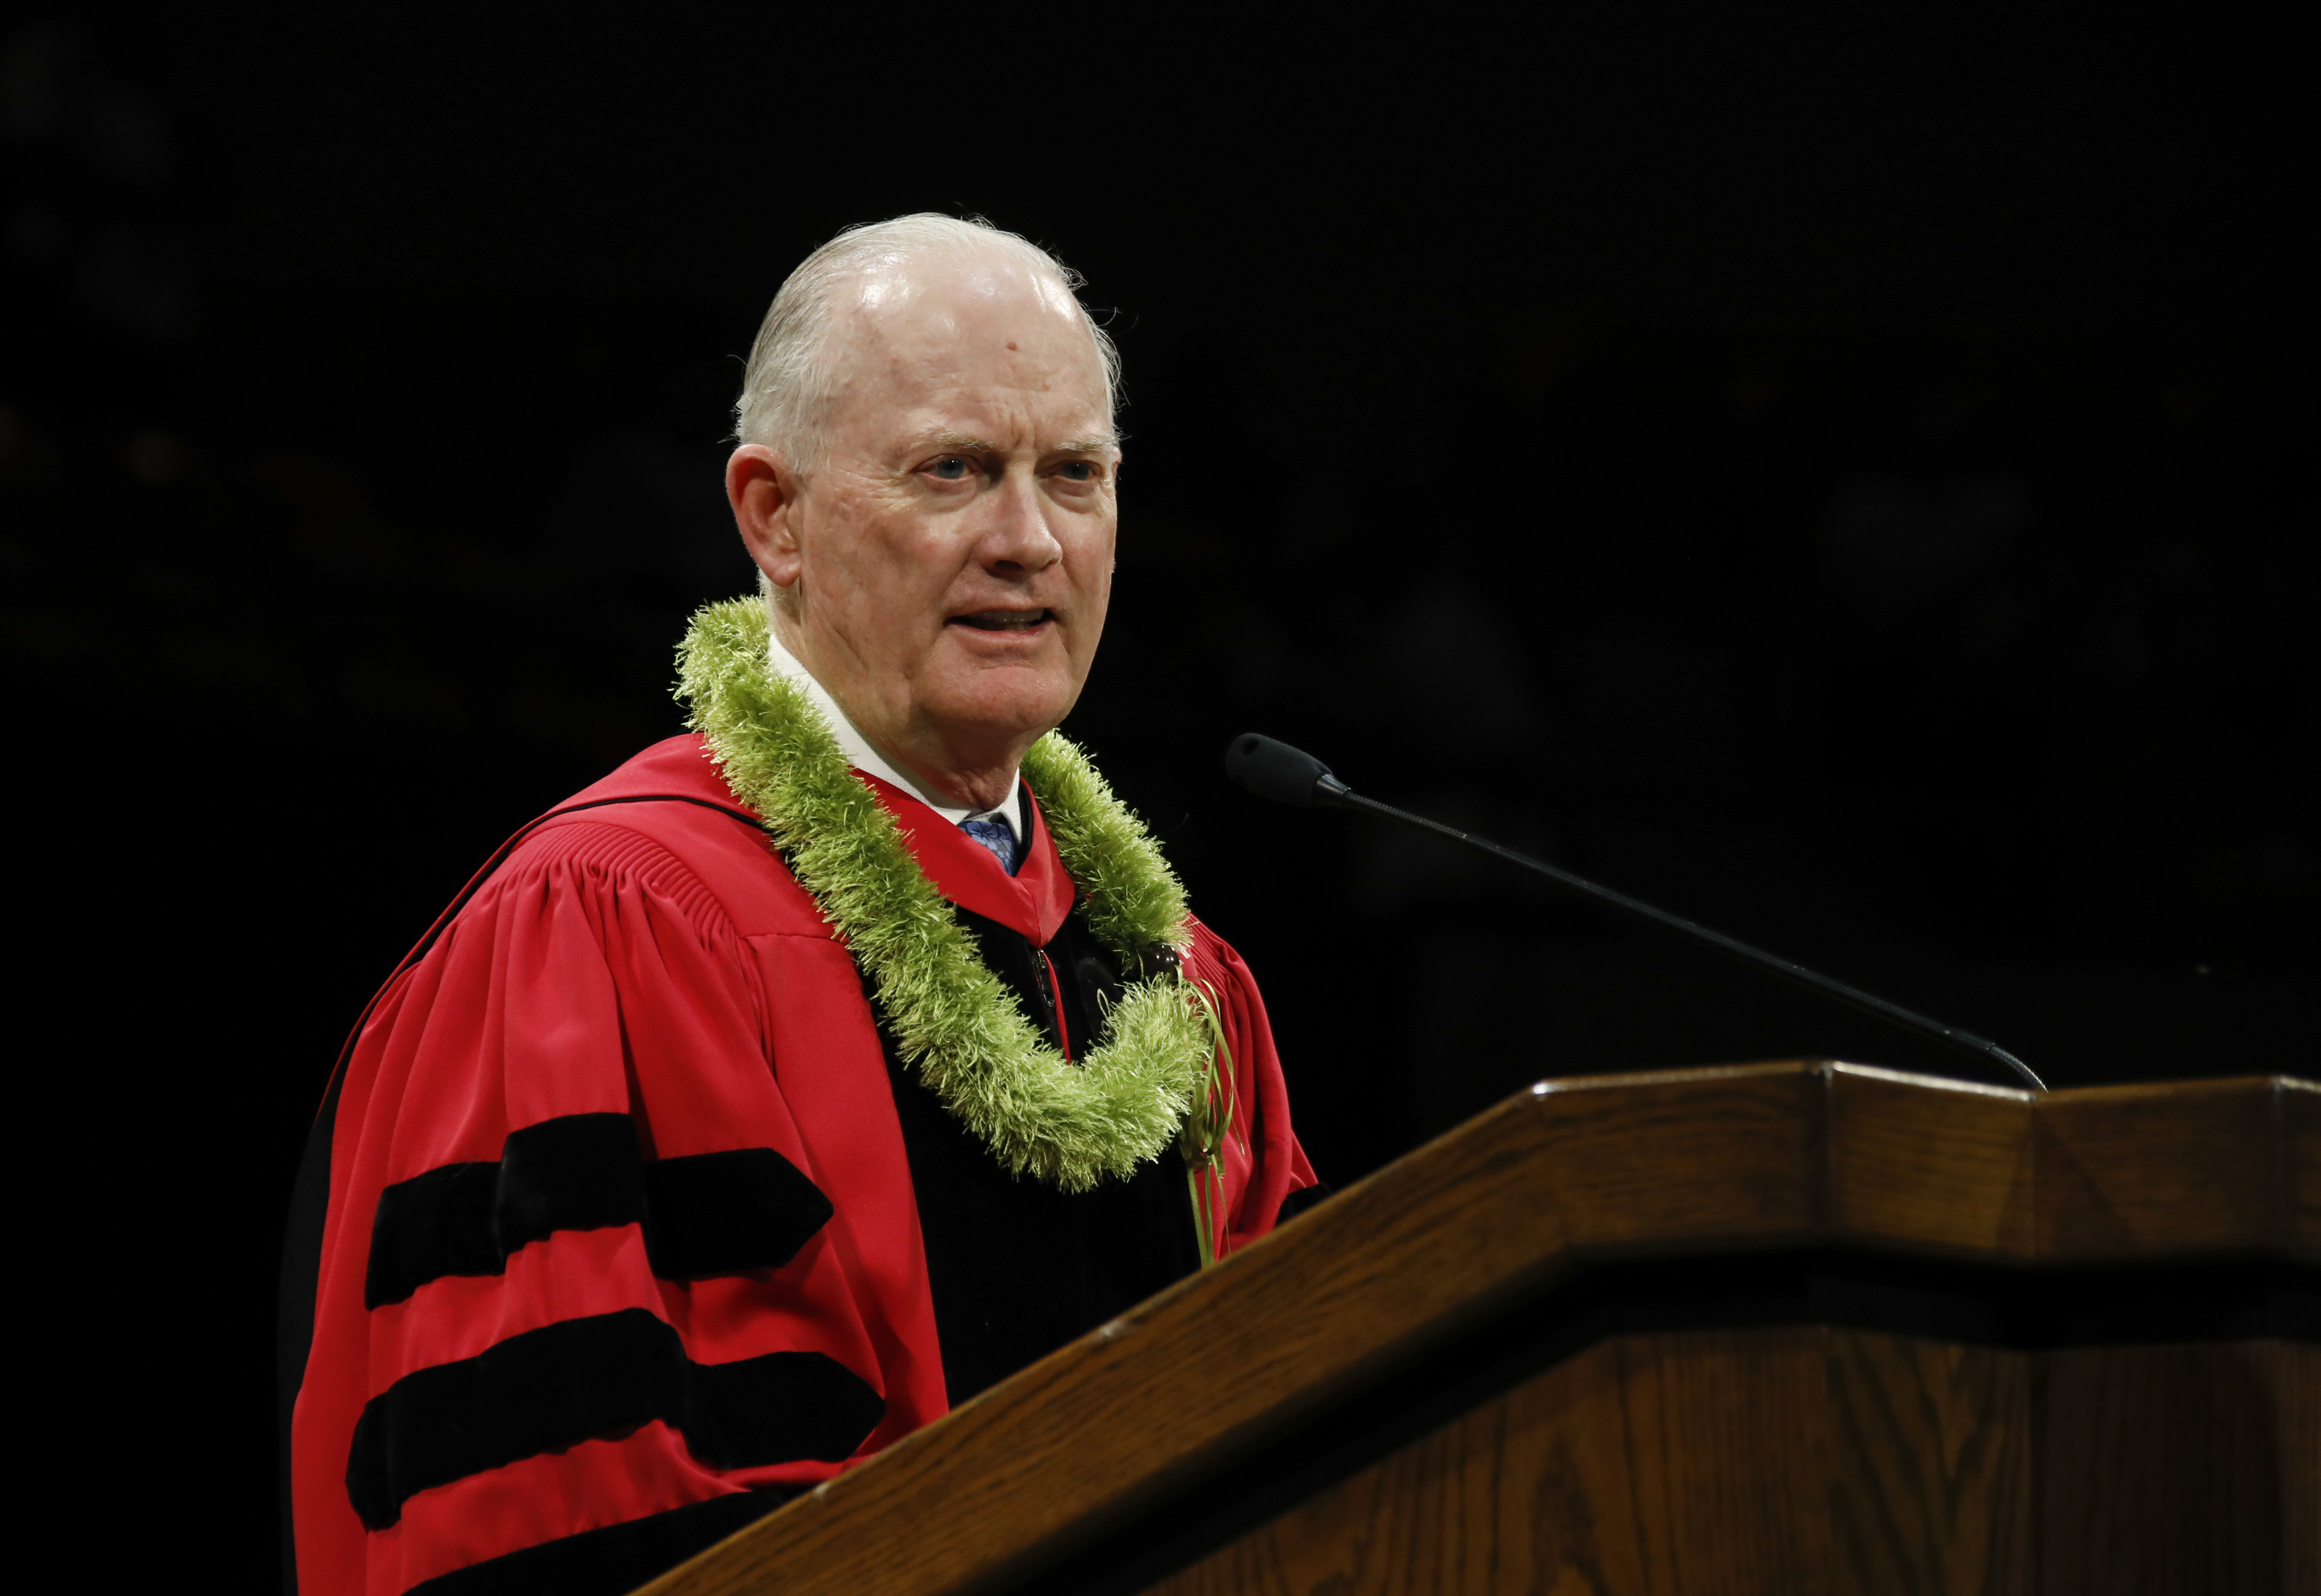 Elder Kim B. Clark, General Authority Seventy and Commissioner of the Church Education System speaks to graduates during the BYU-Hawaii Winter Semester Commencement ceremony on April 20, 2019.